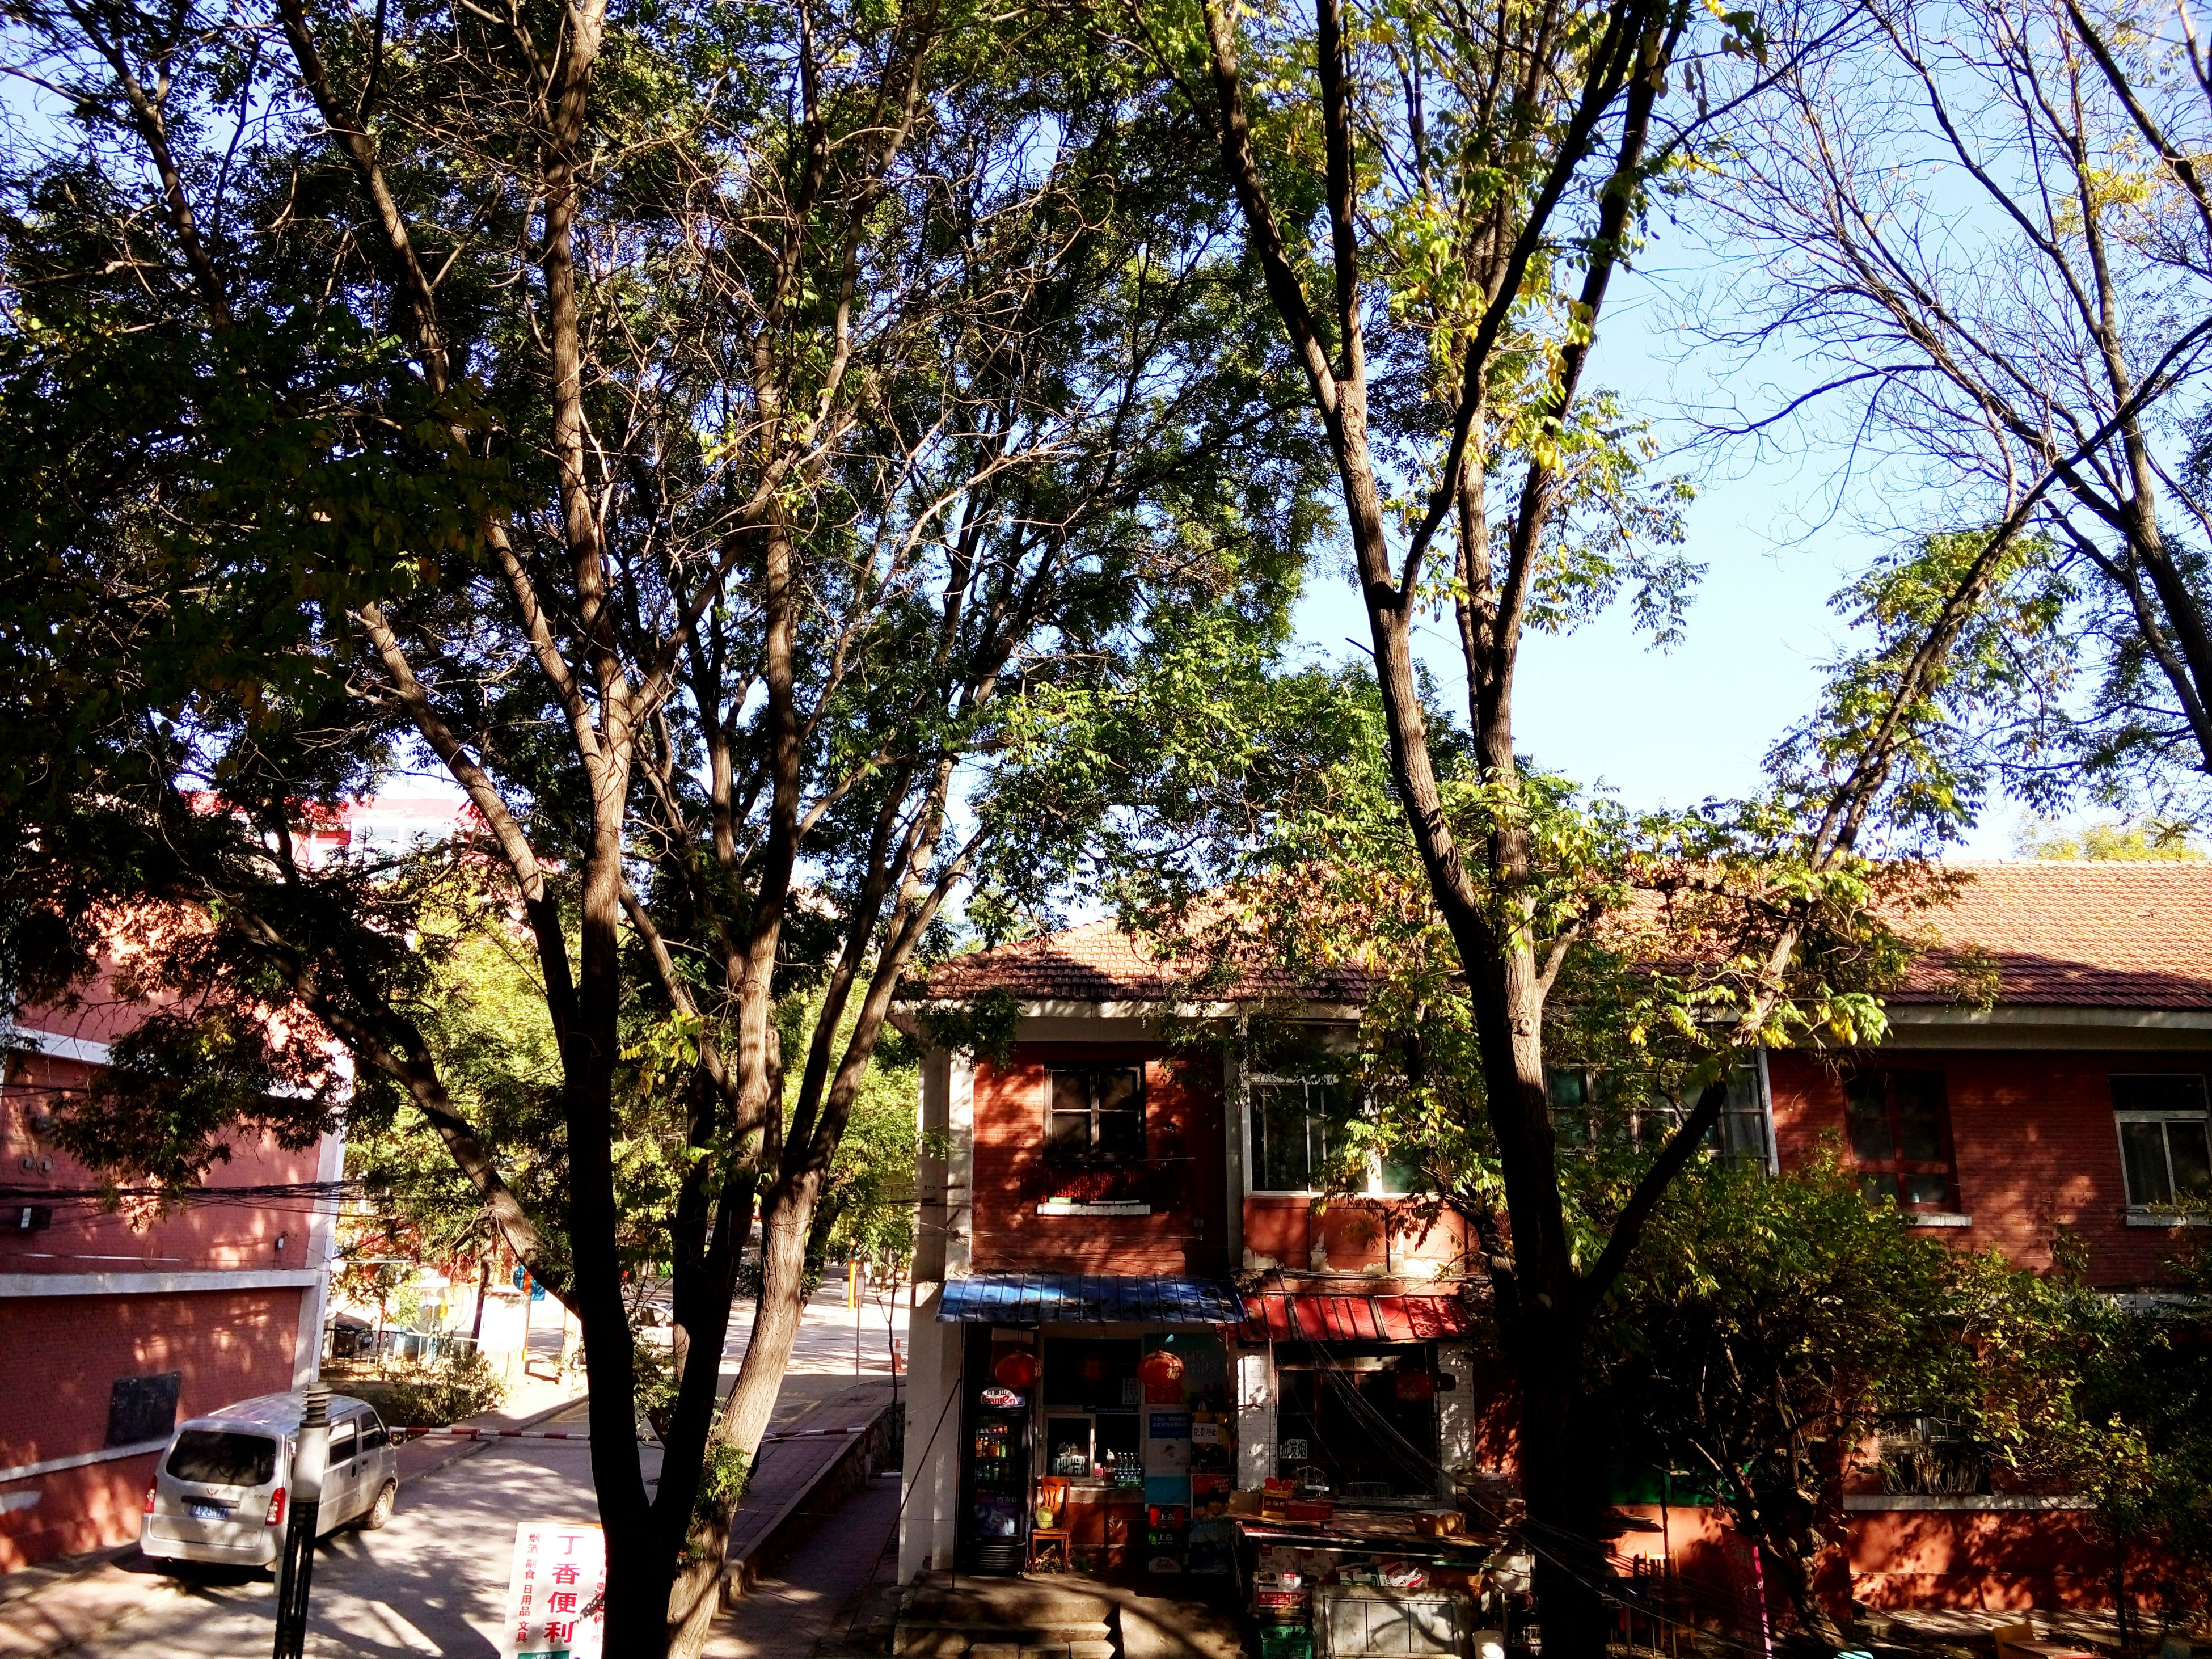 tree, building exterior, built structure, architecture, house, growth, branch, residential structure, residential building, tree trunk, nature, green color, day, plant, clear sky, outdoors, no people, sunlight, sky, lush foliage